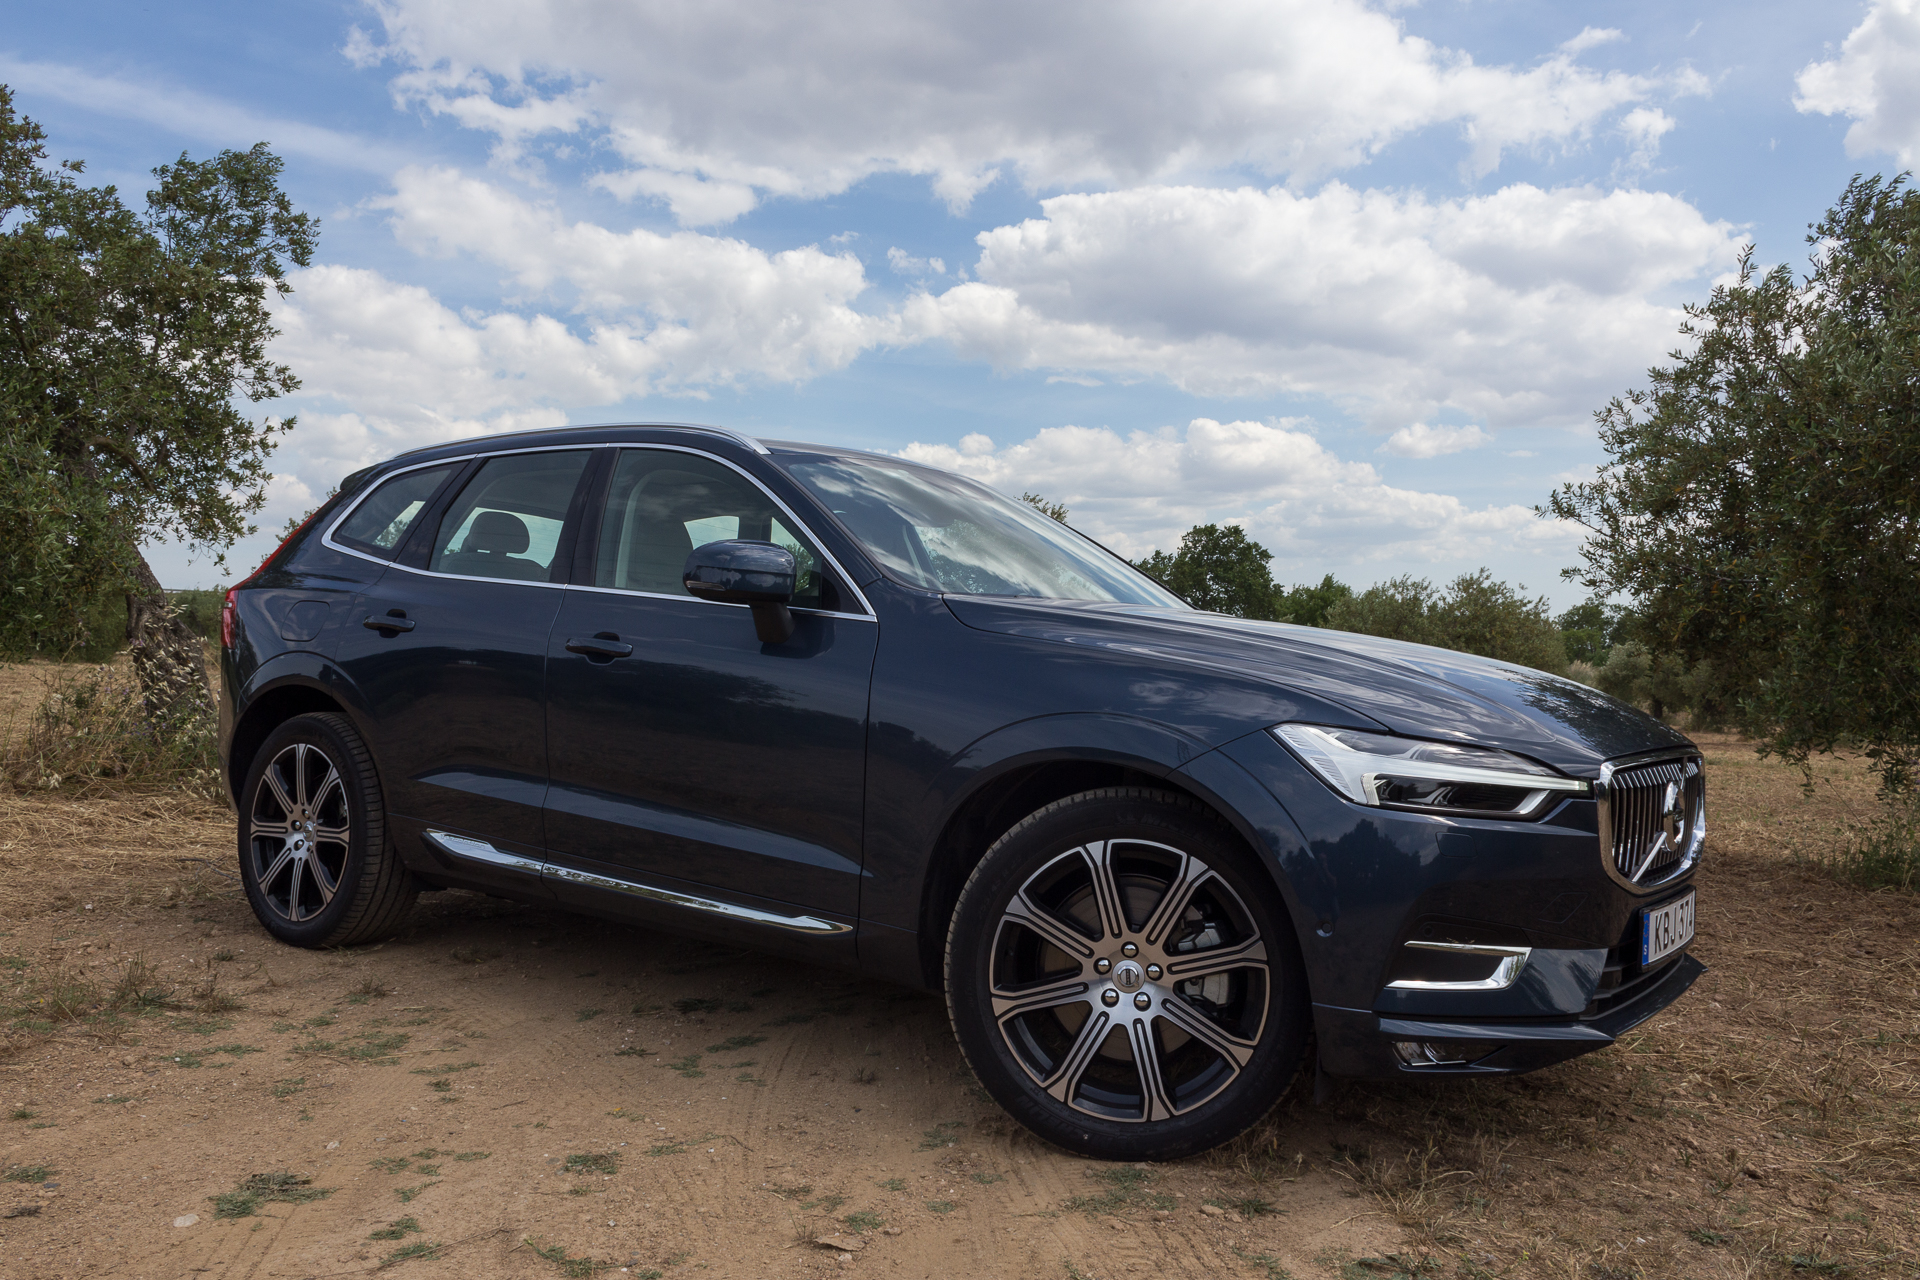 2018 volvo truck for sale. Wonderful Sale 2018 Volvo XC60 T6 AWD First Drive A Timely Reboot For Volvo Truck For Sale